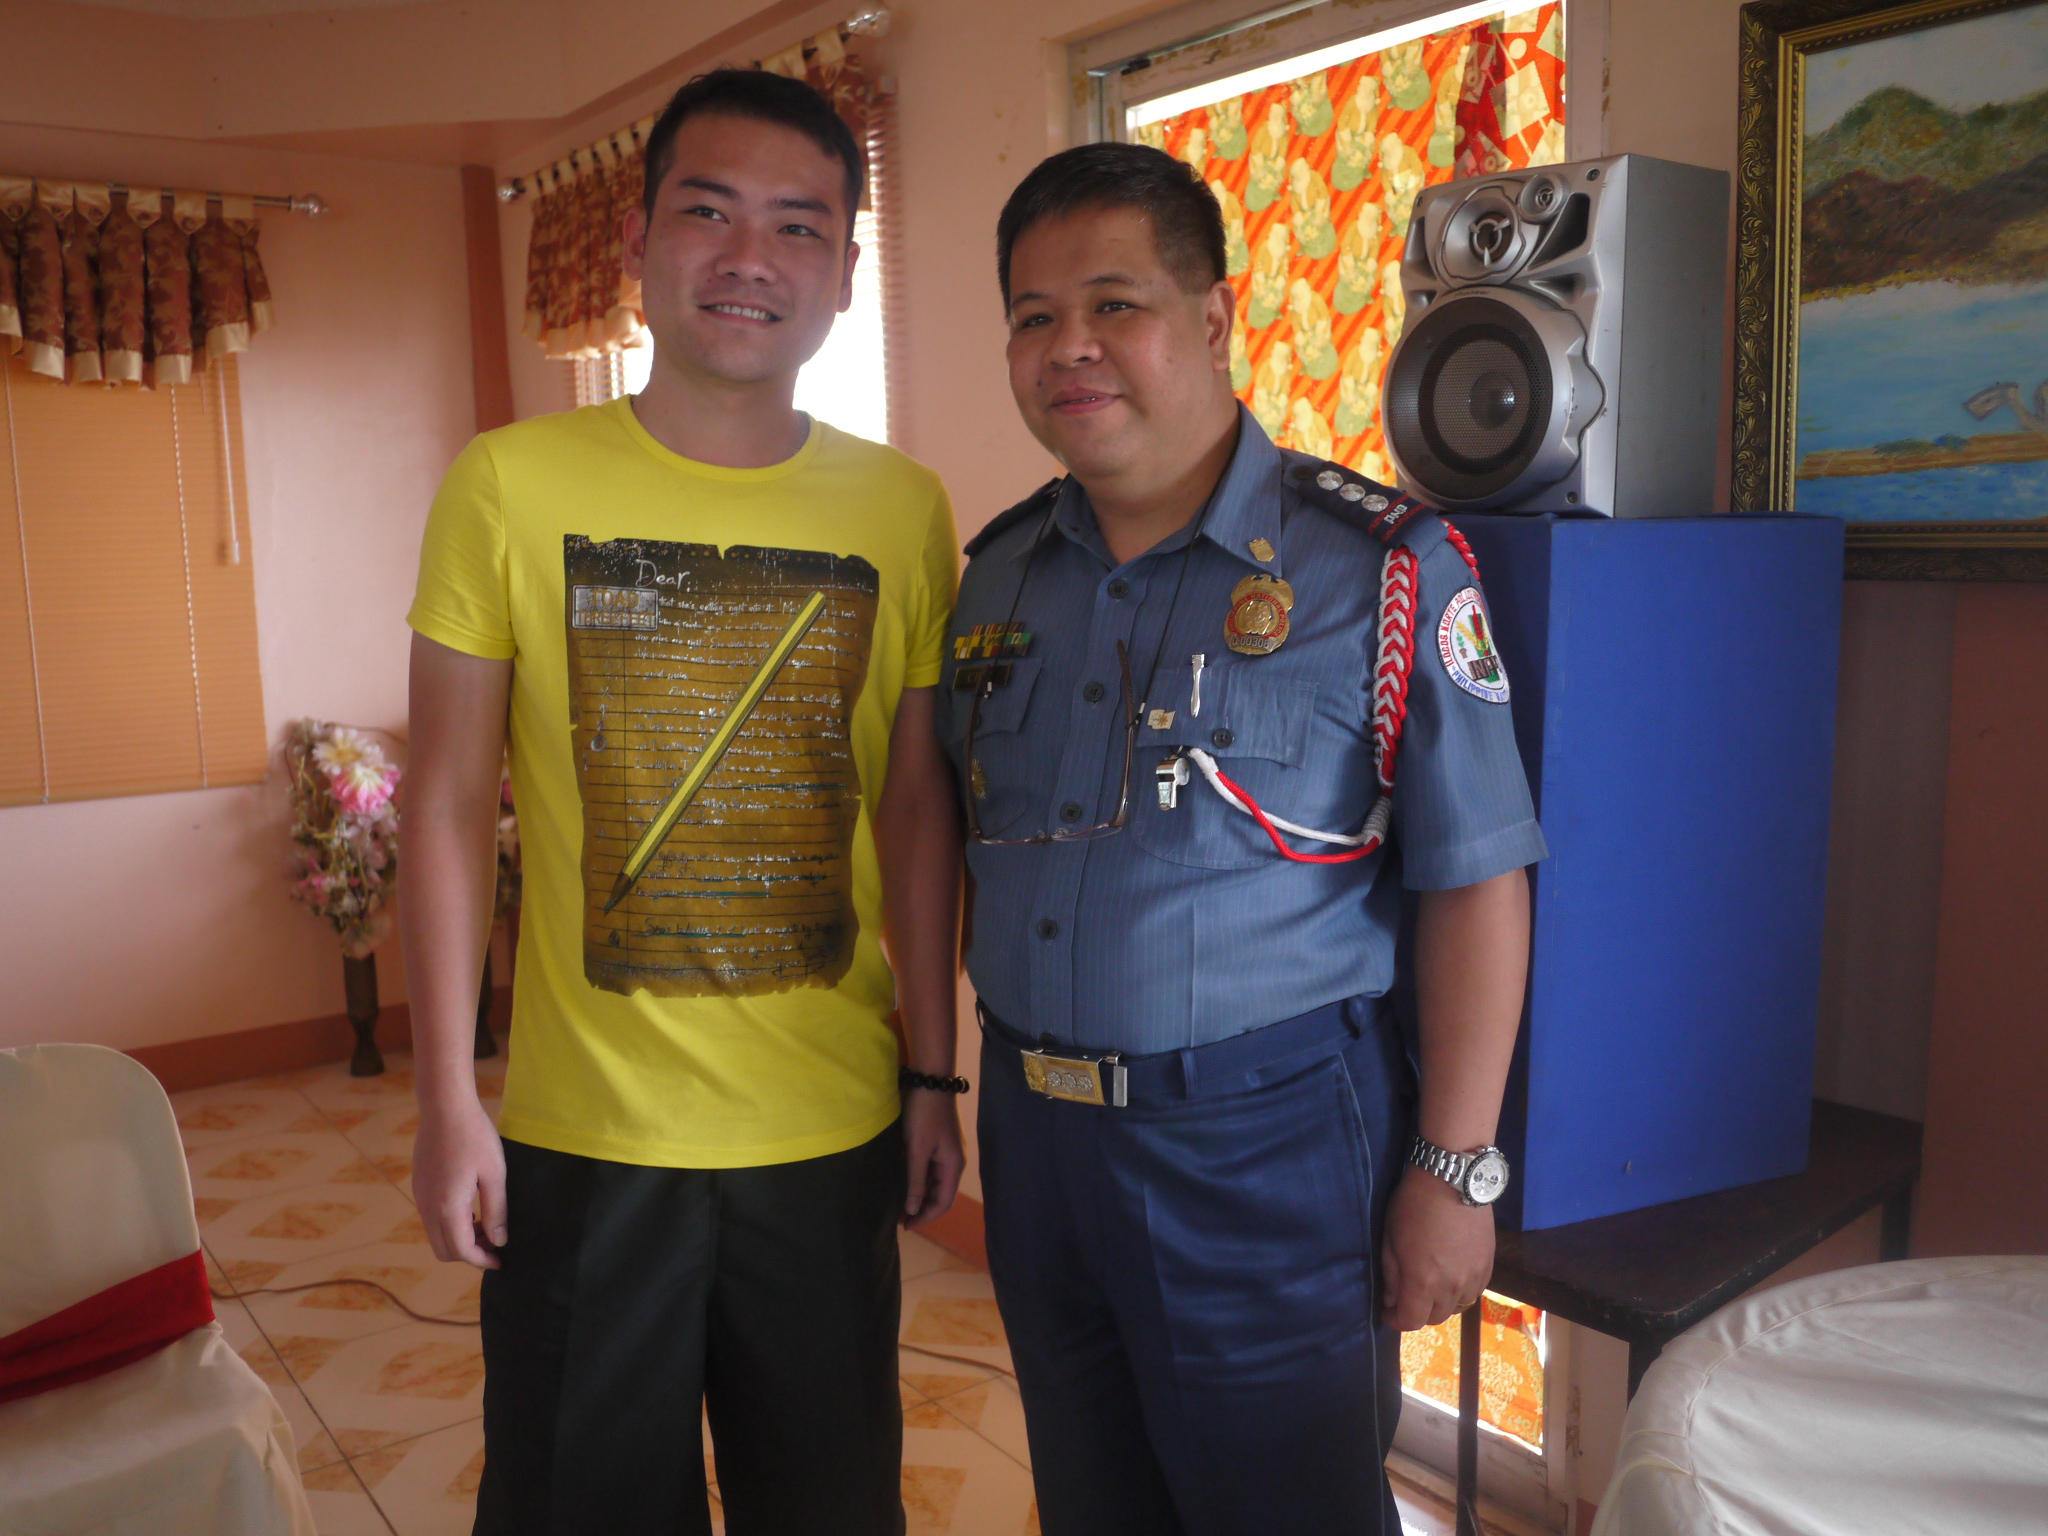 Chinese tourist in a photo op with the Provincial Director, Police Senior Superintendent